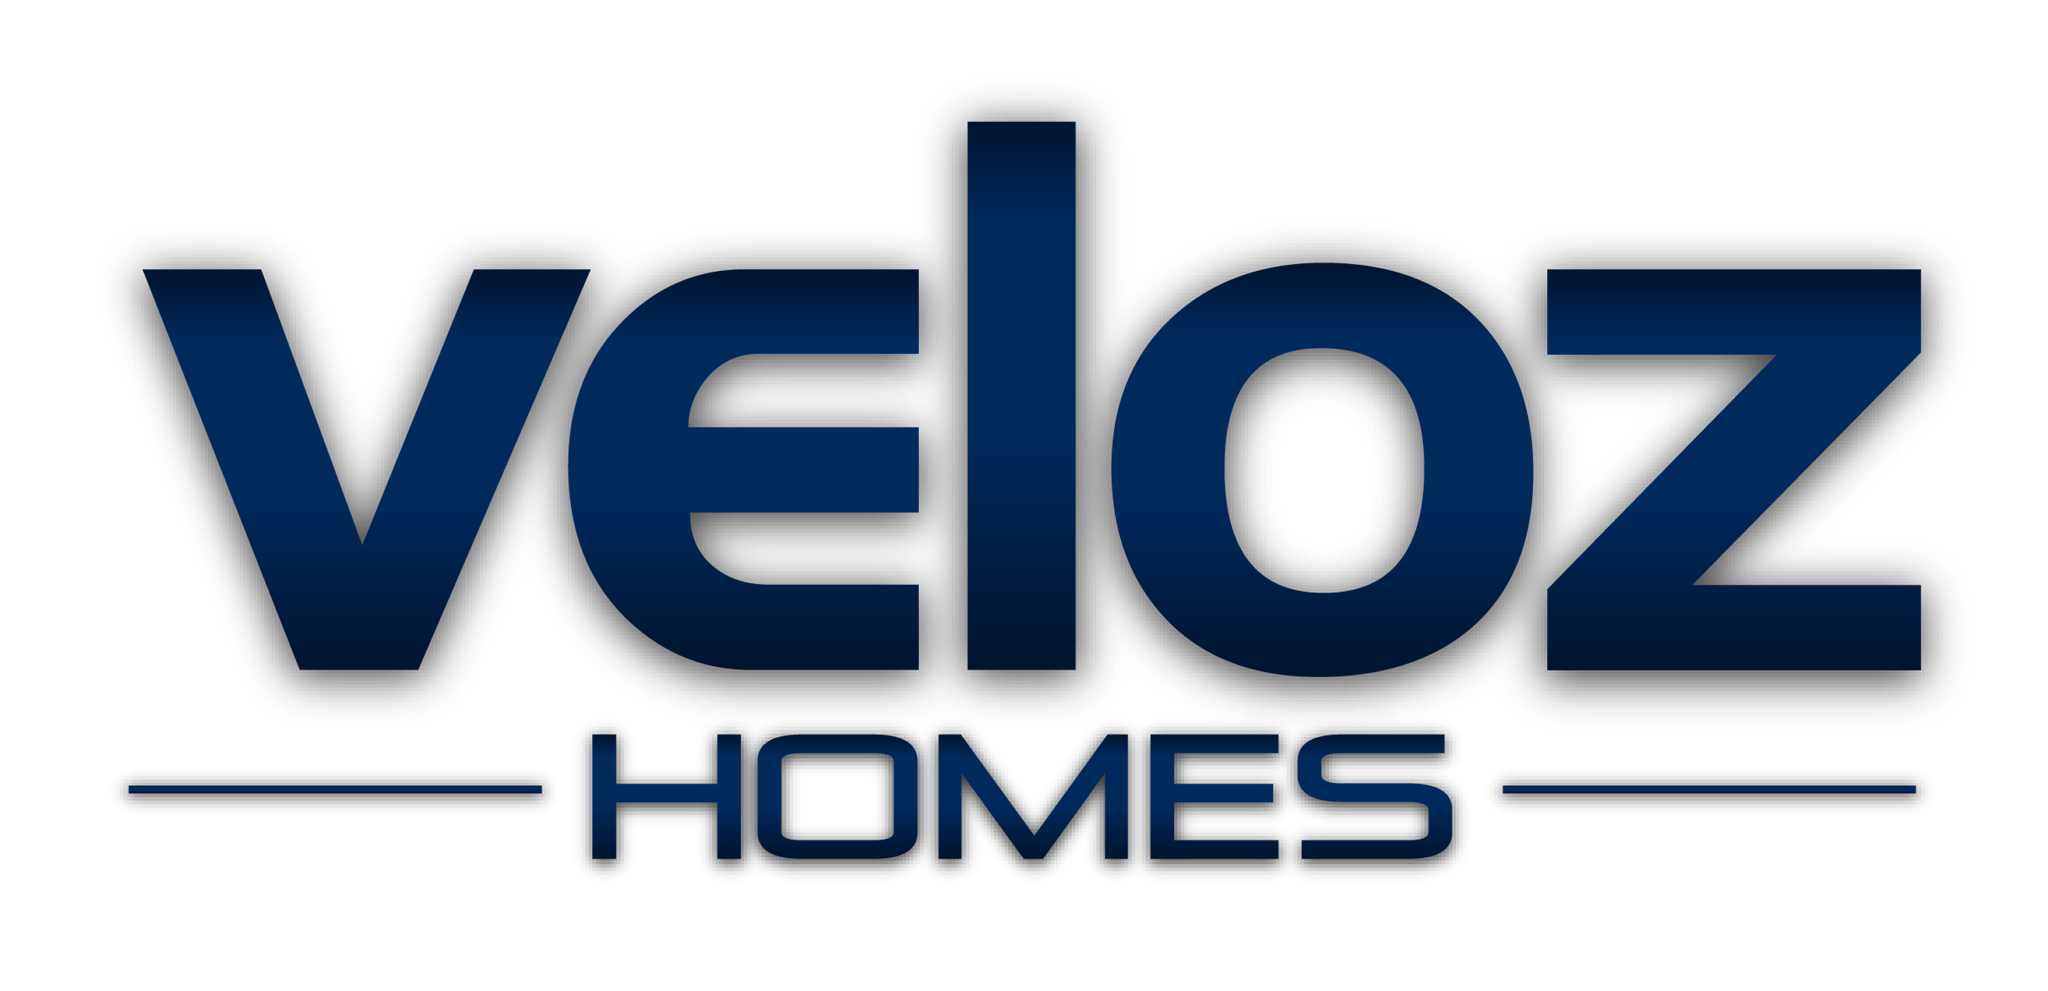 velozhomes.png